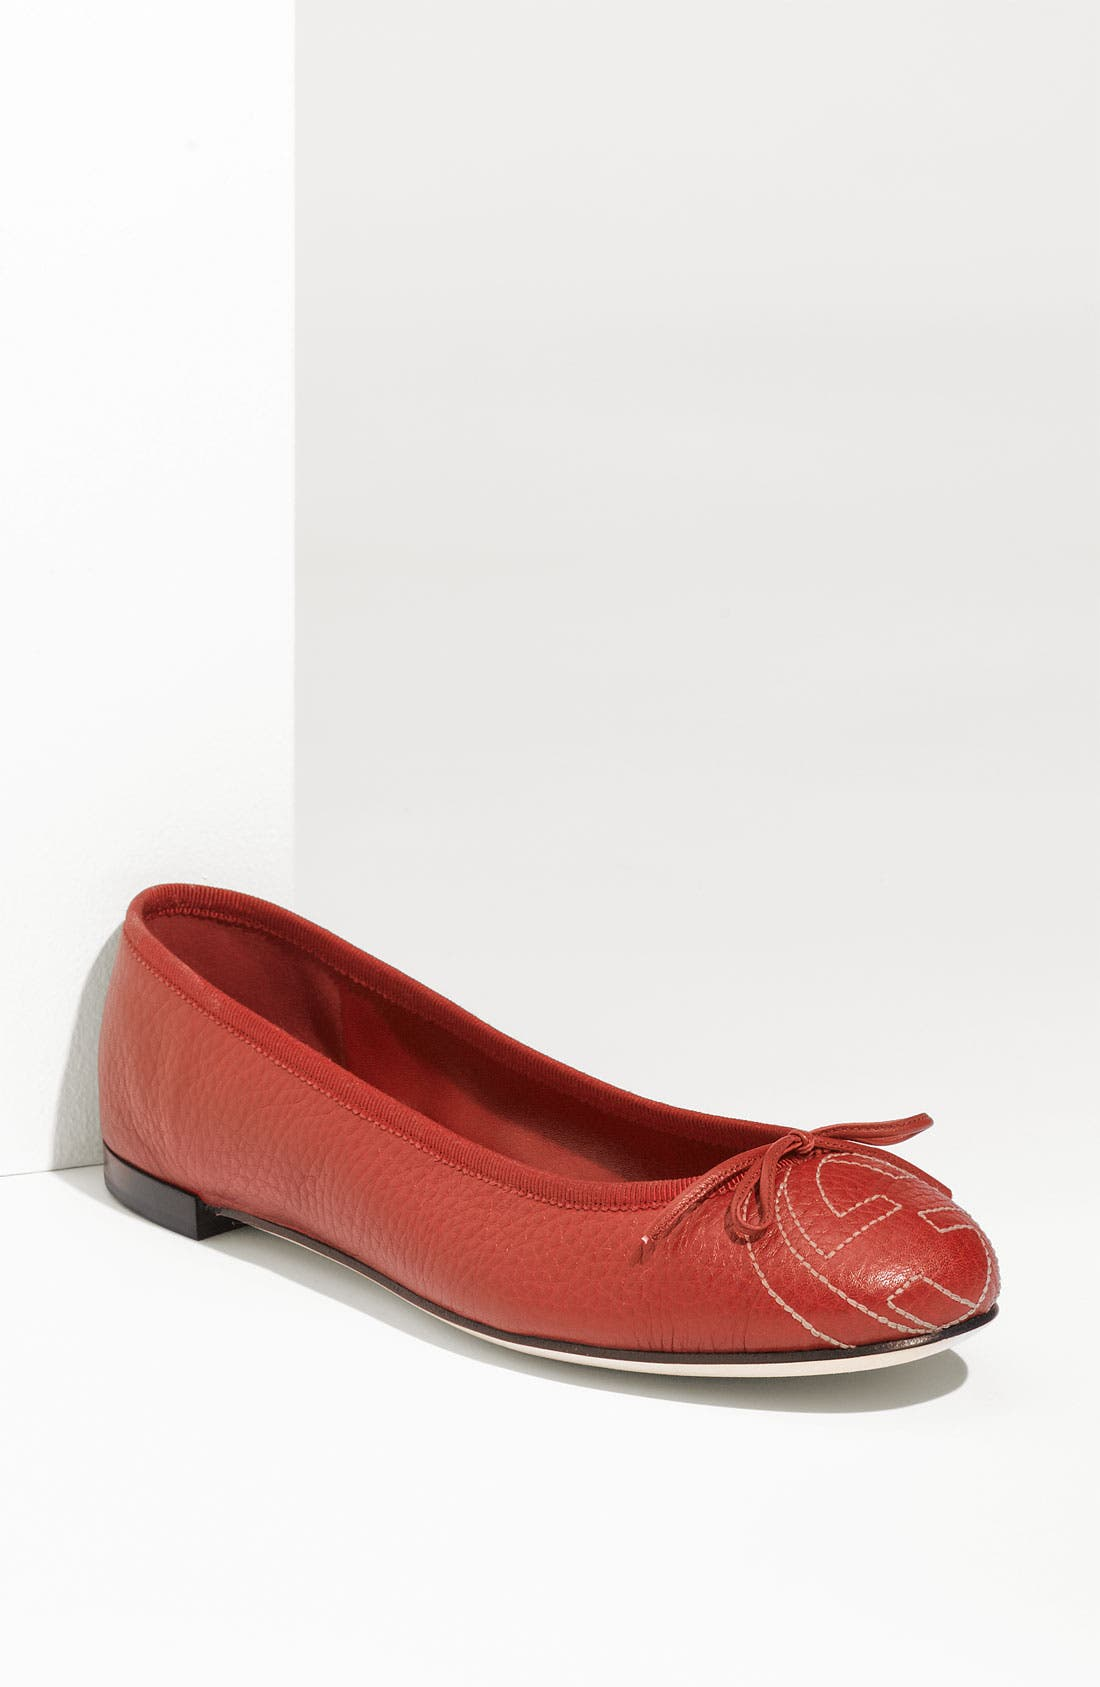 Alternate Image 1 Selected - Gucci 'Soho' Ballerina Flat